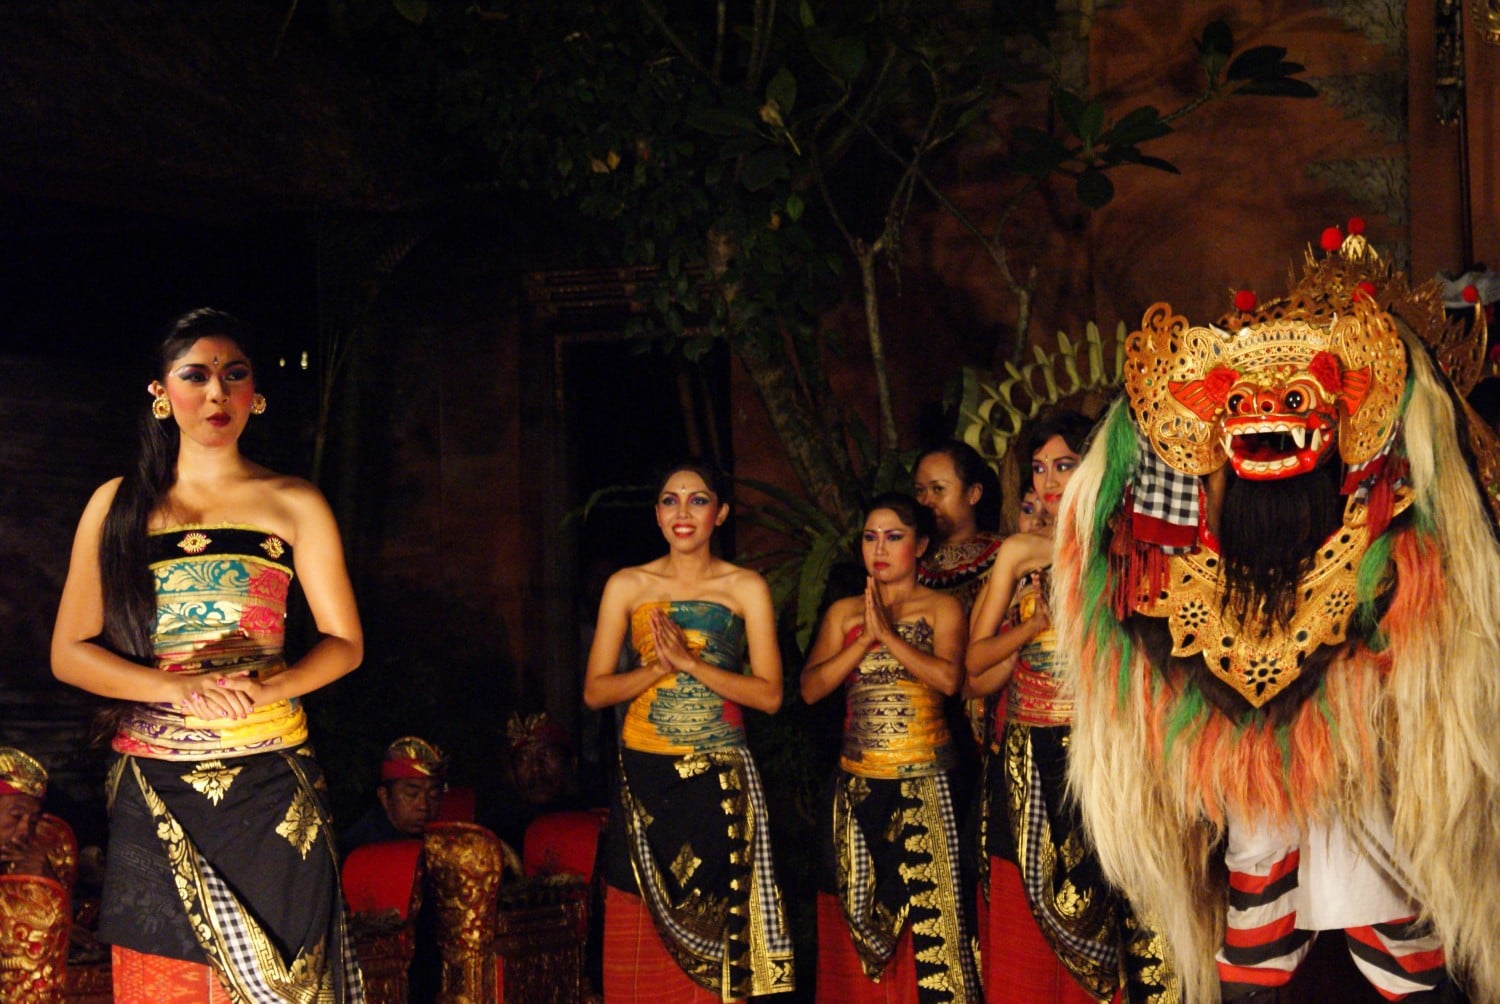 Balinese Dances at Ubud Palace